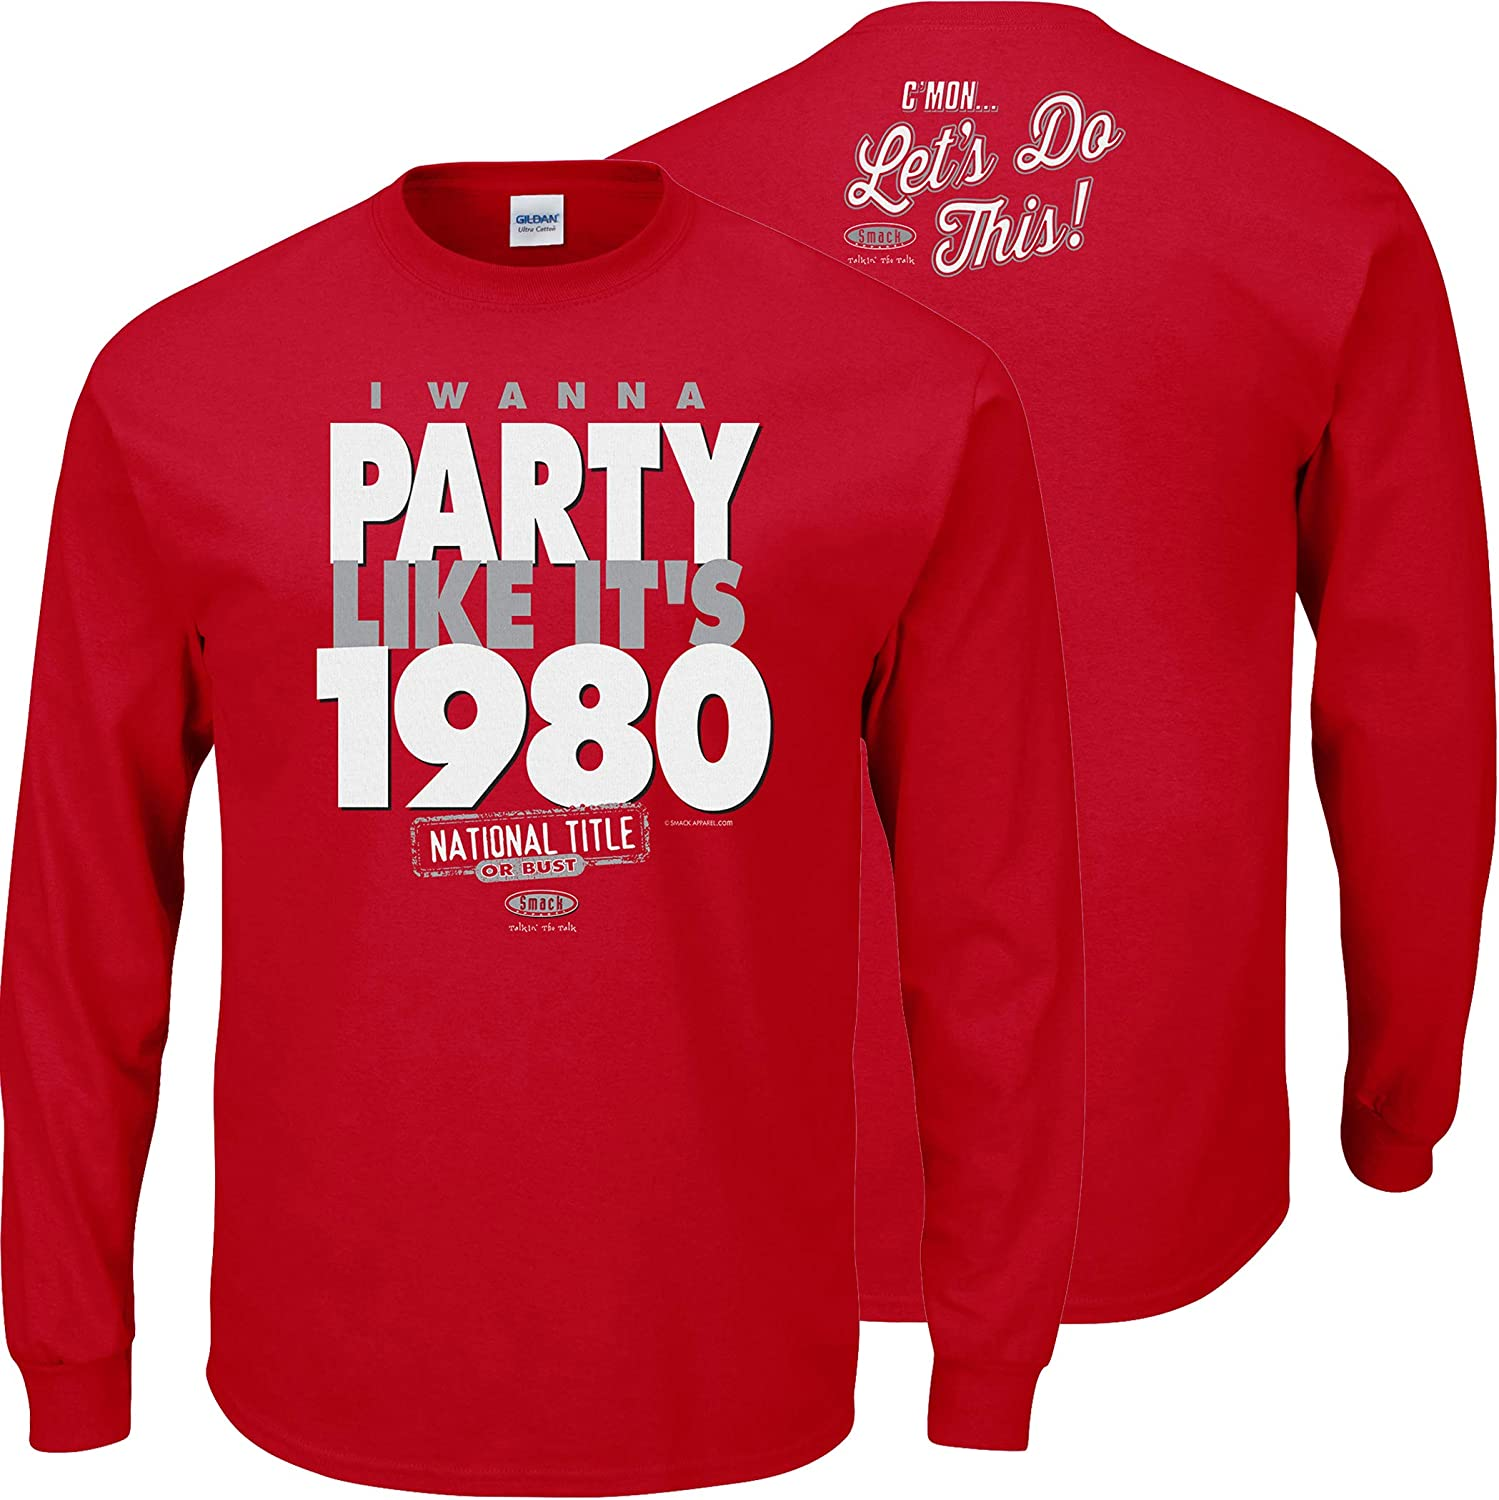 I Wanna Party Like Its 1980 Red T Shirt Smack Apparel Georgia Football Fans Sm-5X